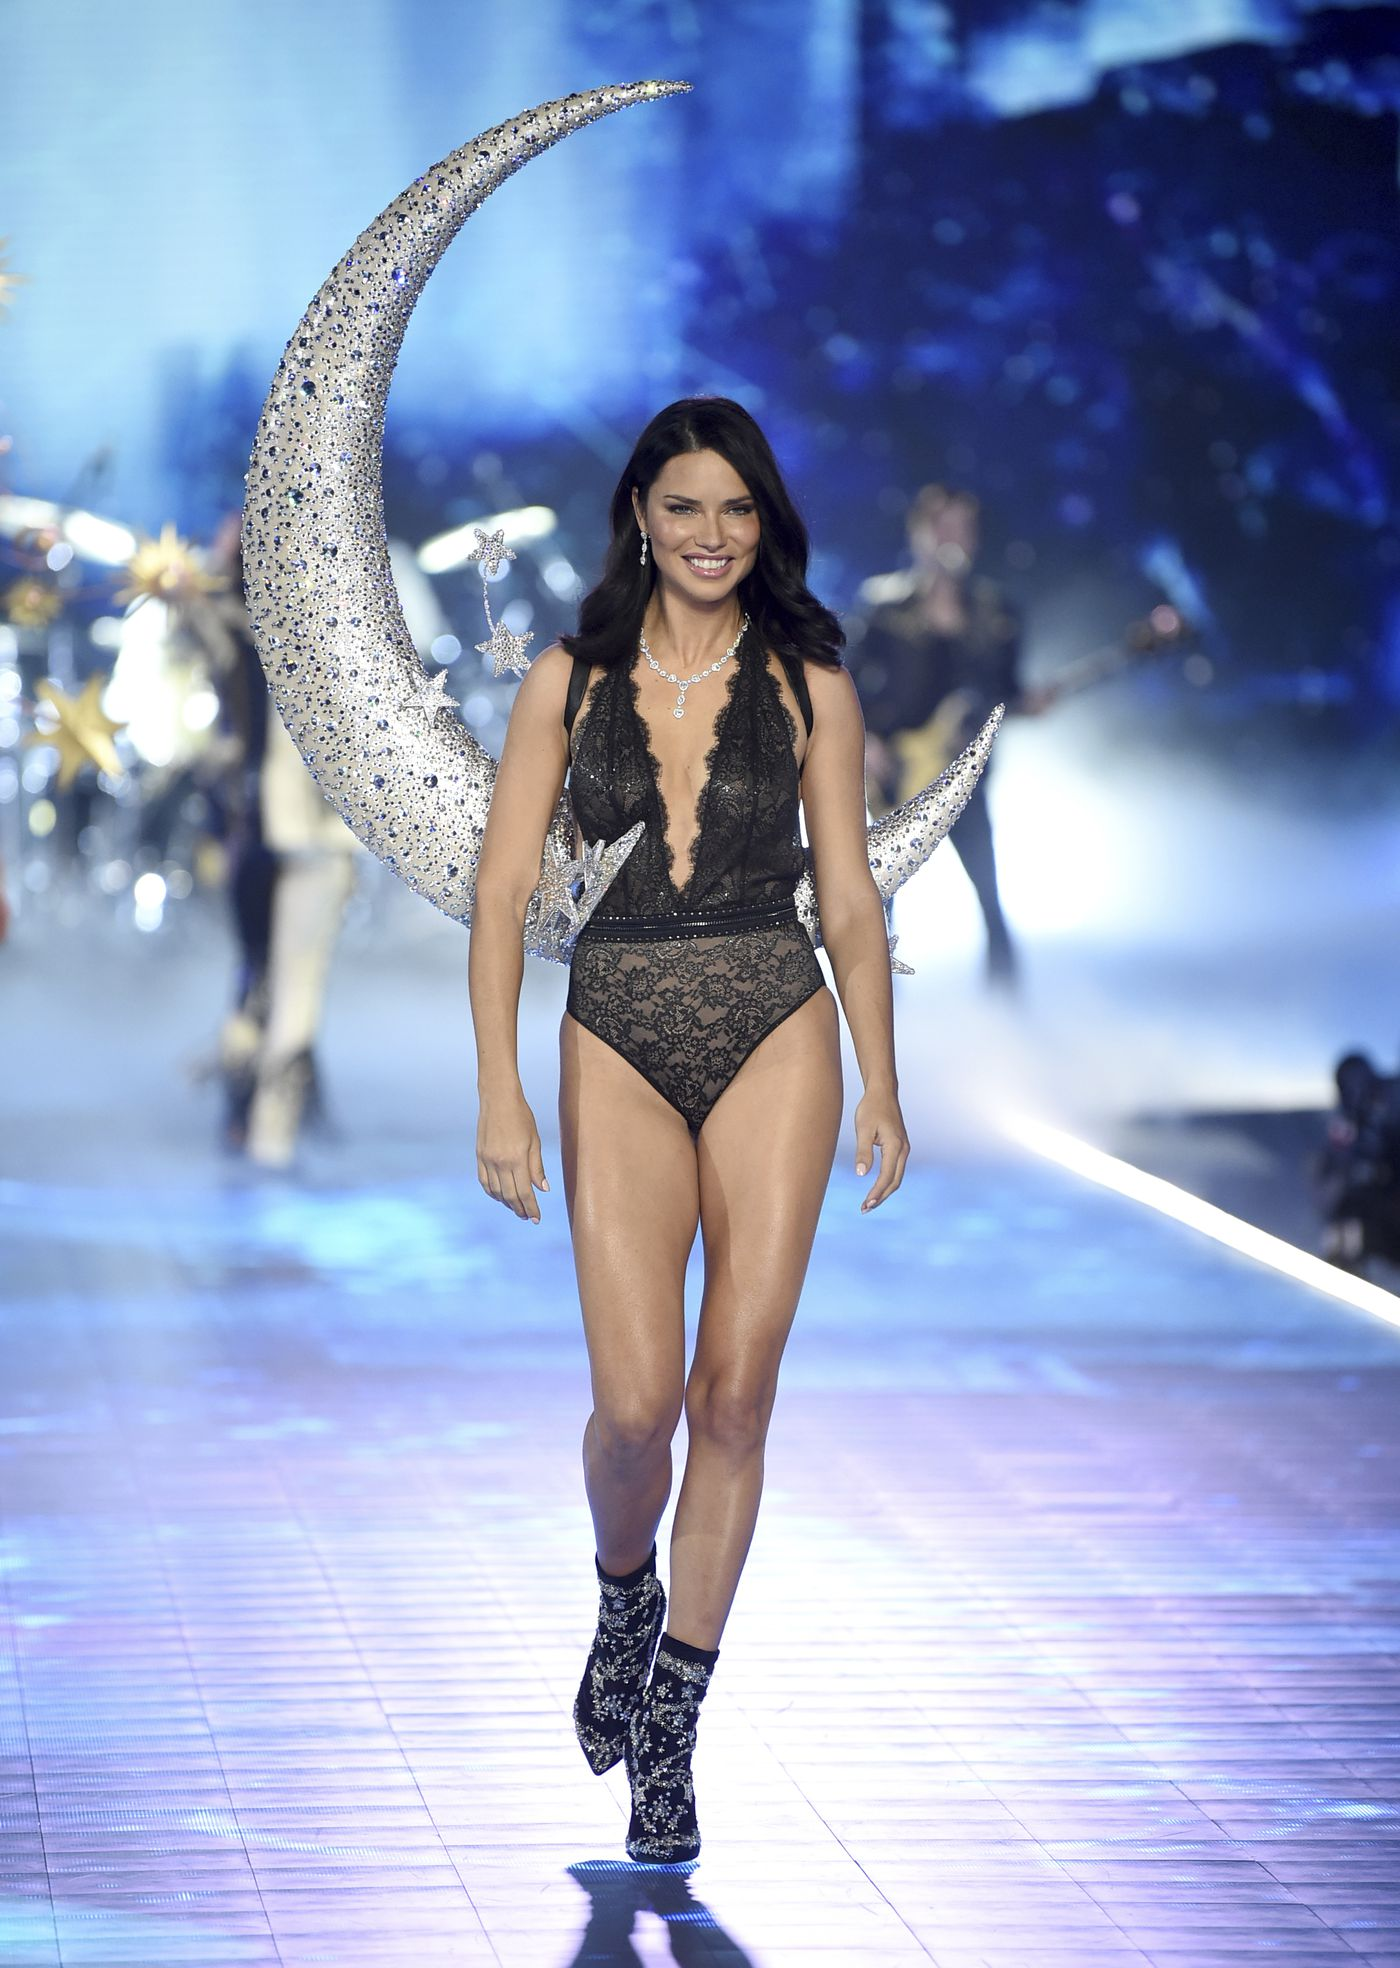 89dfc0a2b6 Adriana Lima walks the runway during the 2018 Victoria s Secret Fashion Show  at Pier 94 on